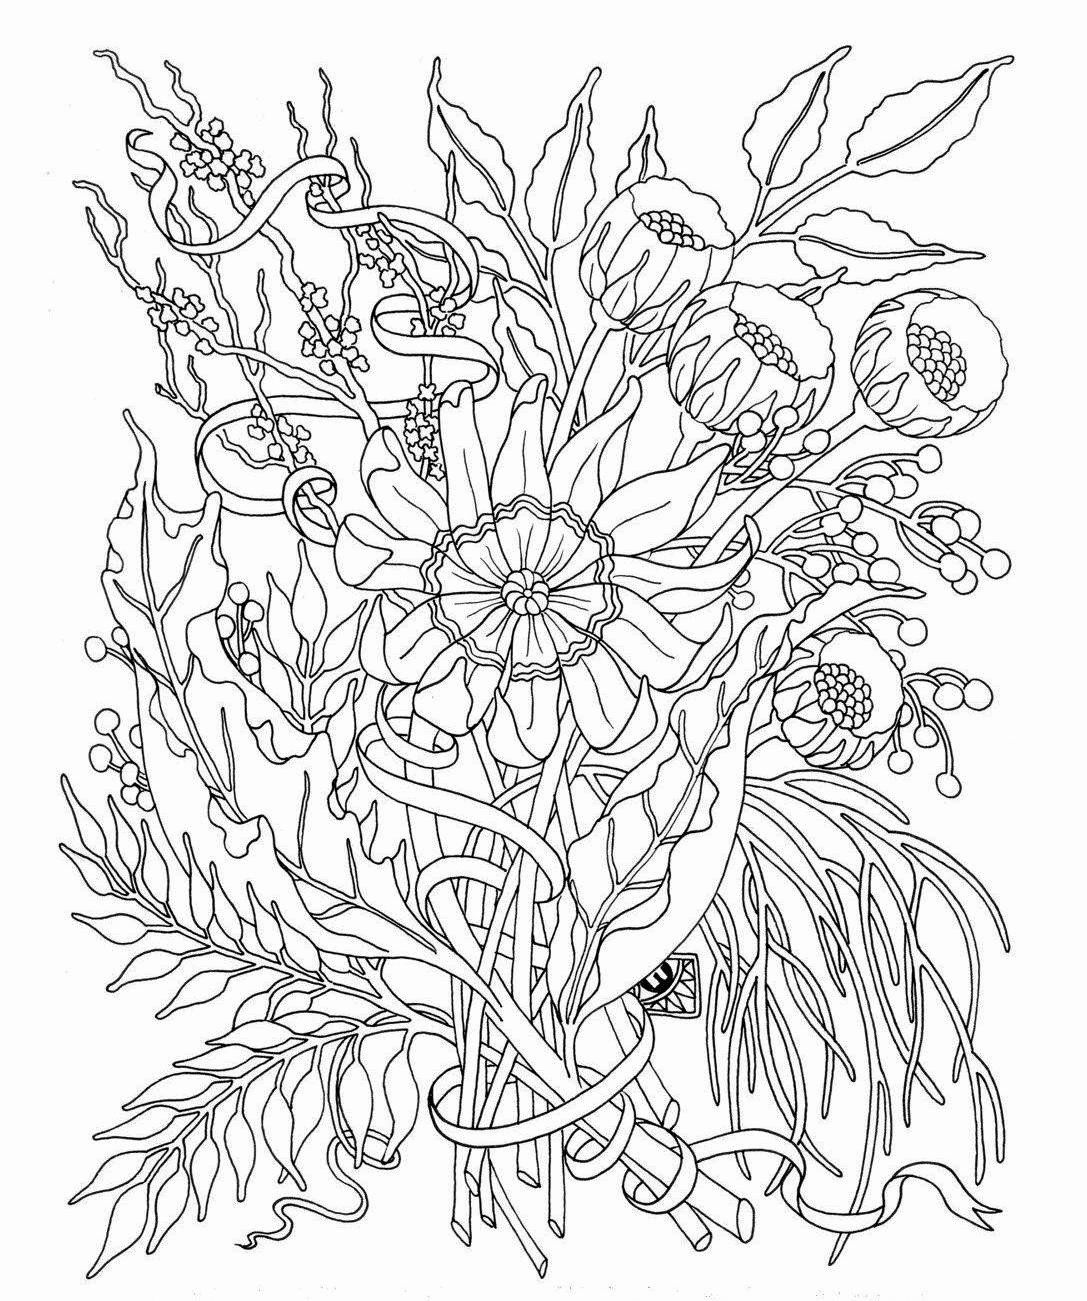 Red Sox Coloring Pages Awesome Coloring Pages Printables Fairy Coloring Pages Garden Coloring Pages Unicorn Coloring Pages